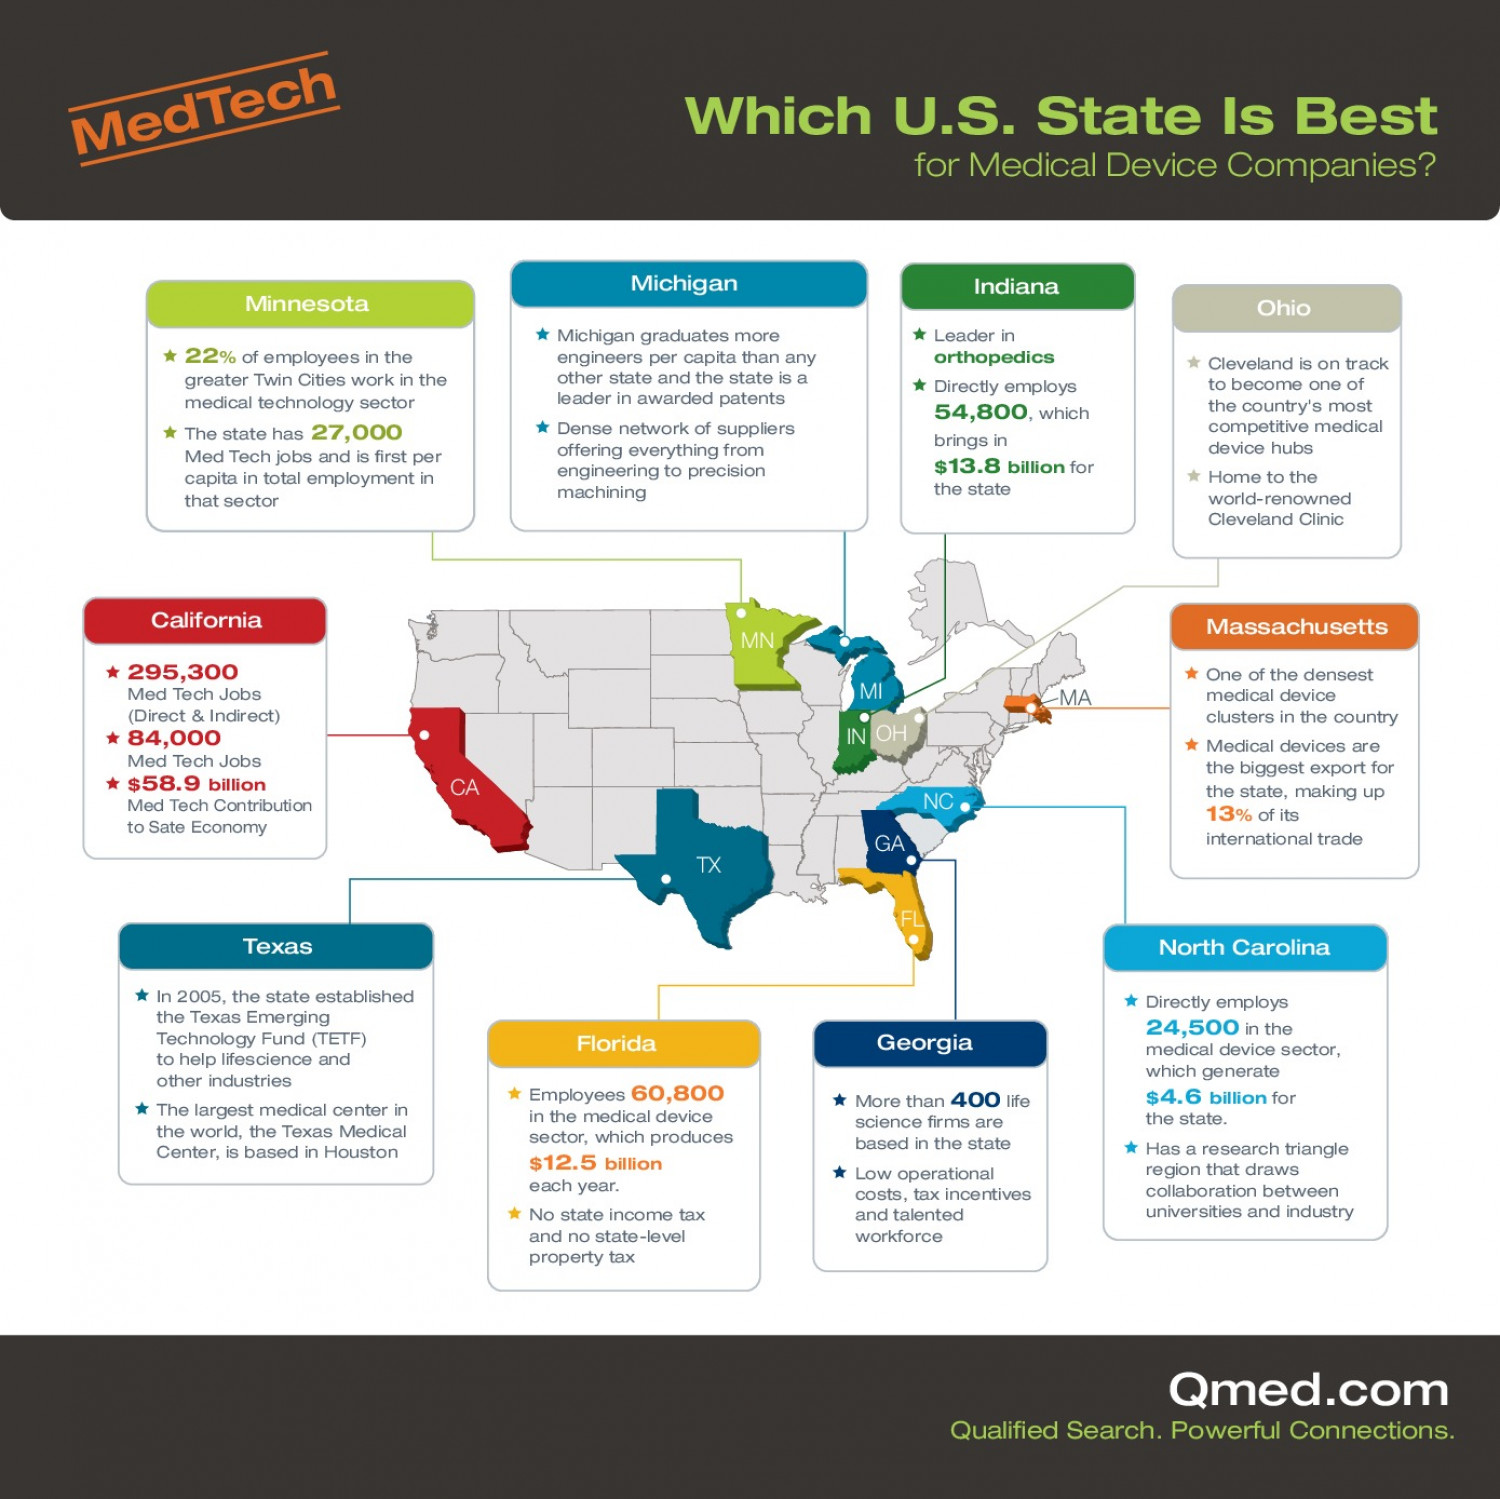 The Top 10 States for Medtech Infographic